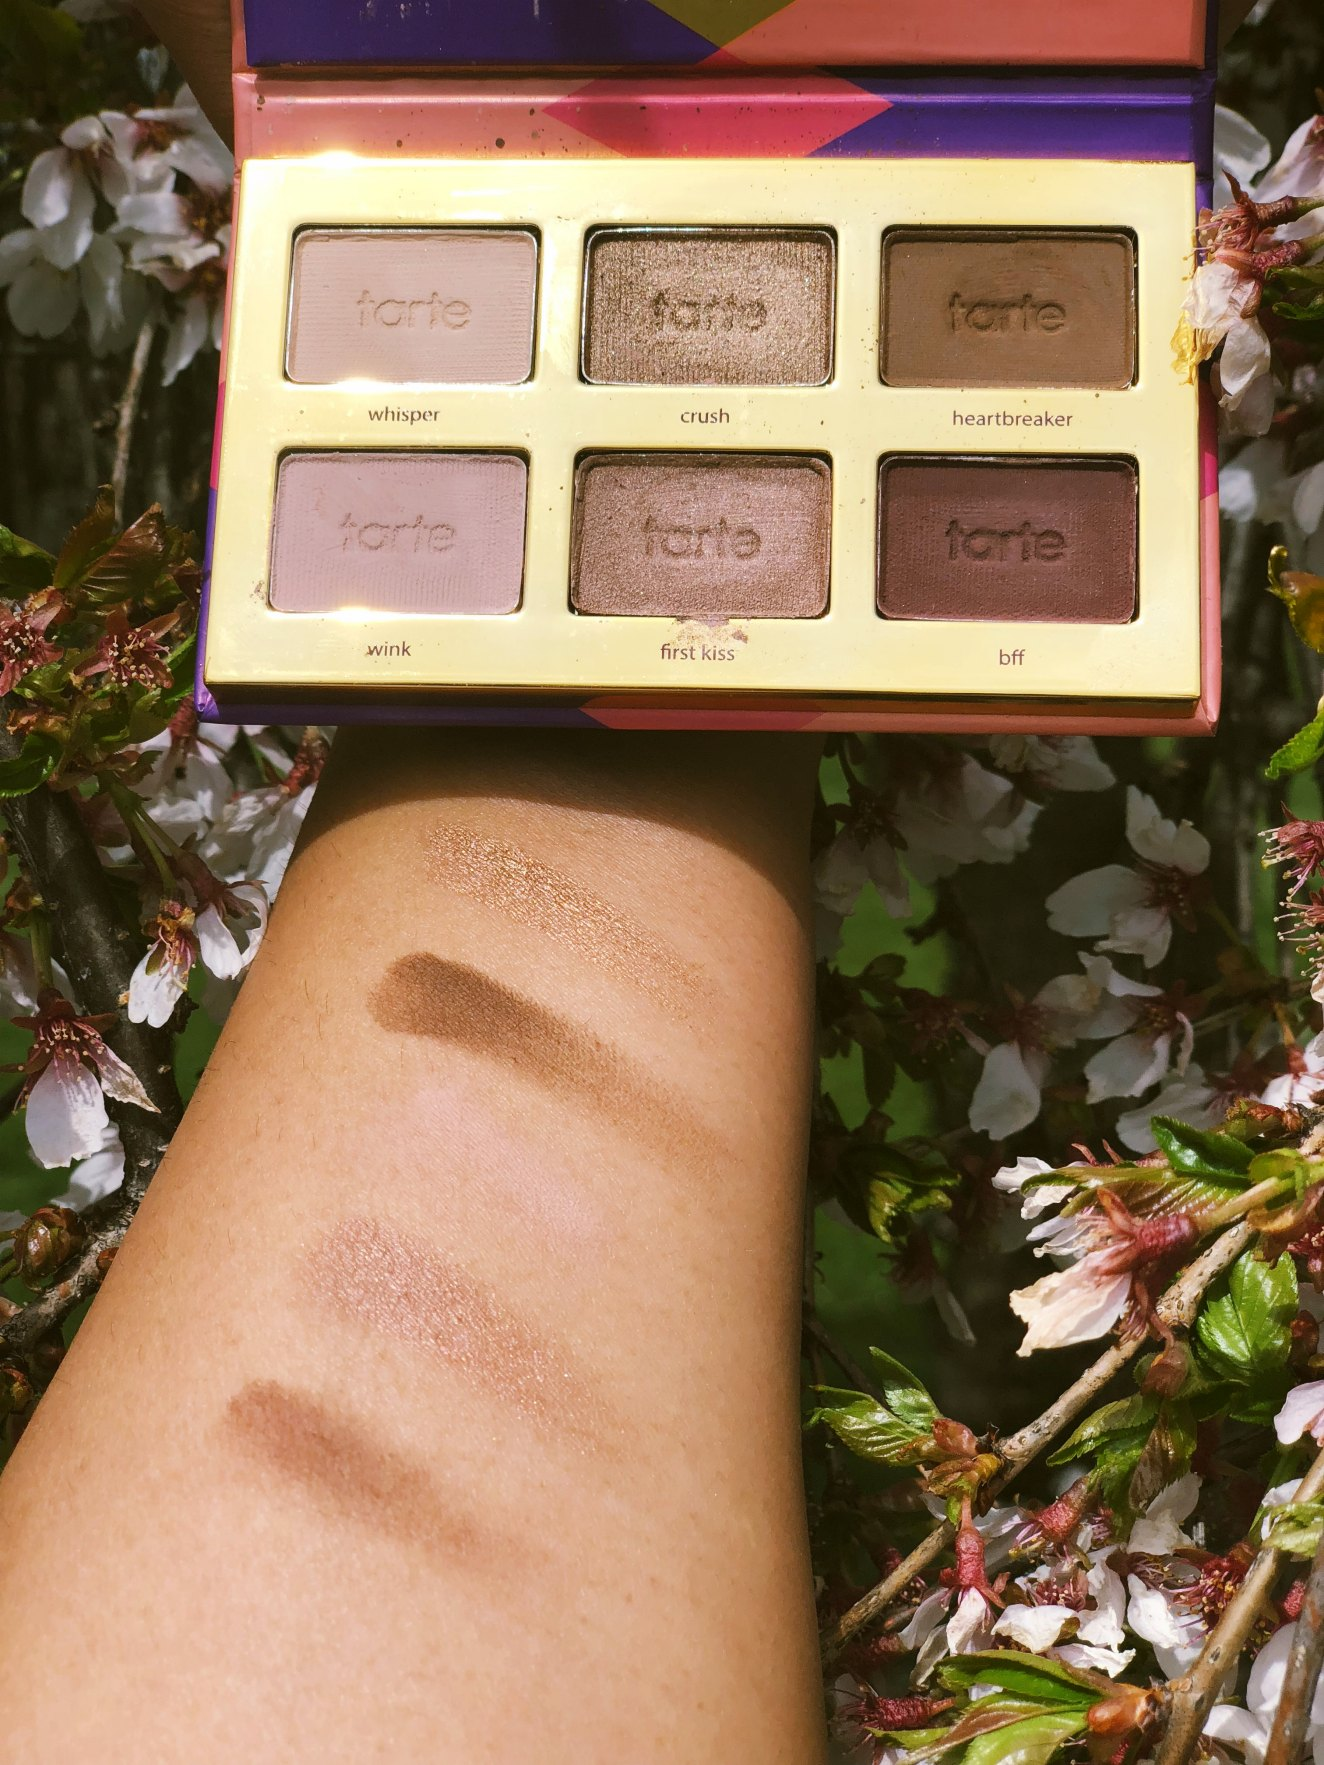 Lifestyle-blog-dreaming-loud-sharing-Sephora-Natural-Beauty-favorites-Tartelette-Tease-eye-palatte - Cruelty Free Beauty Products From Sephora featured by natural beauty blogger, Dreaming Loud